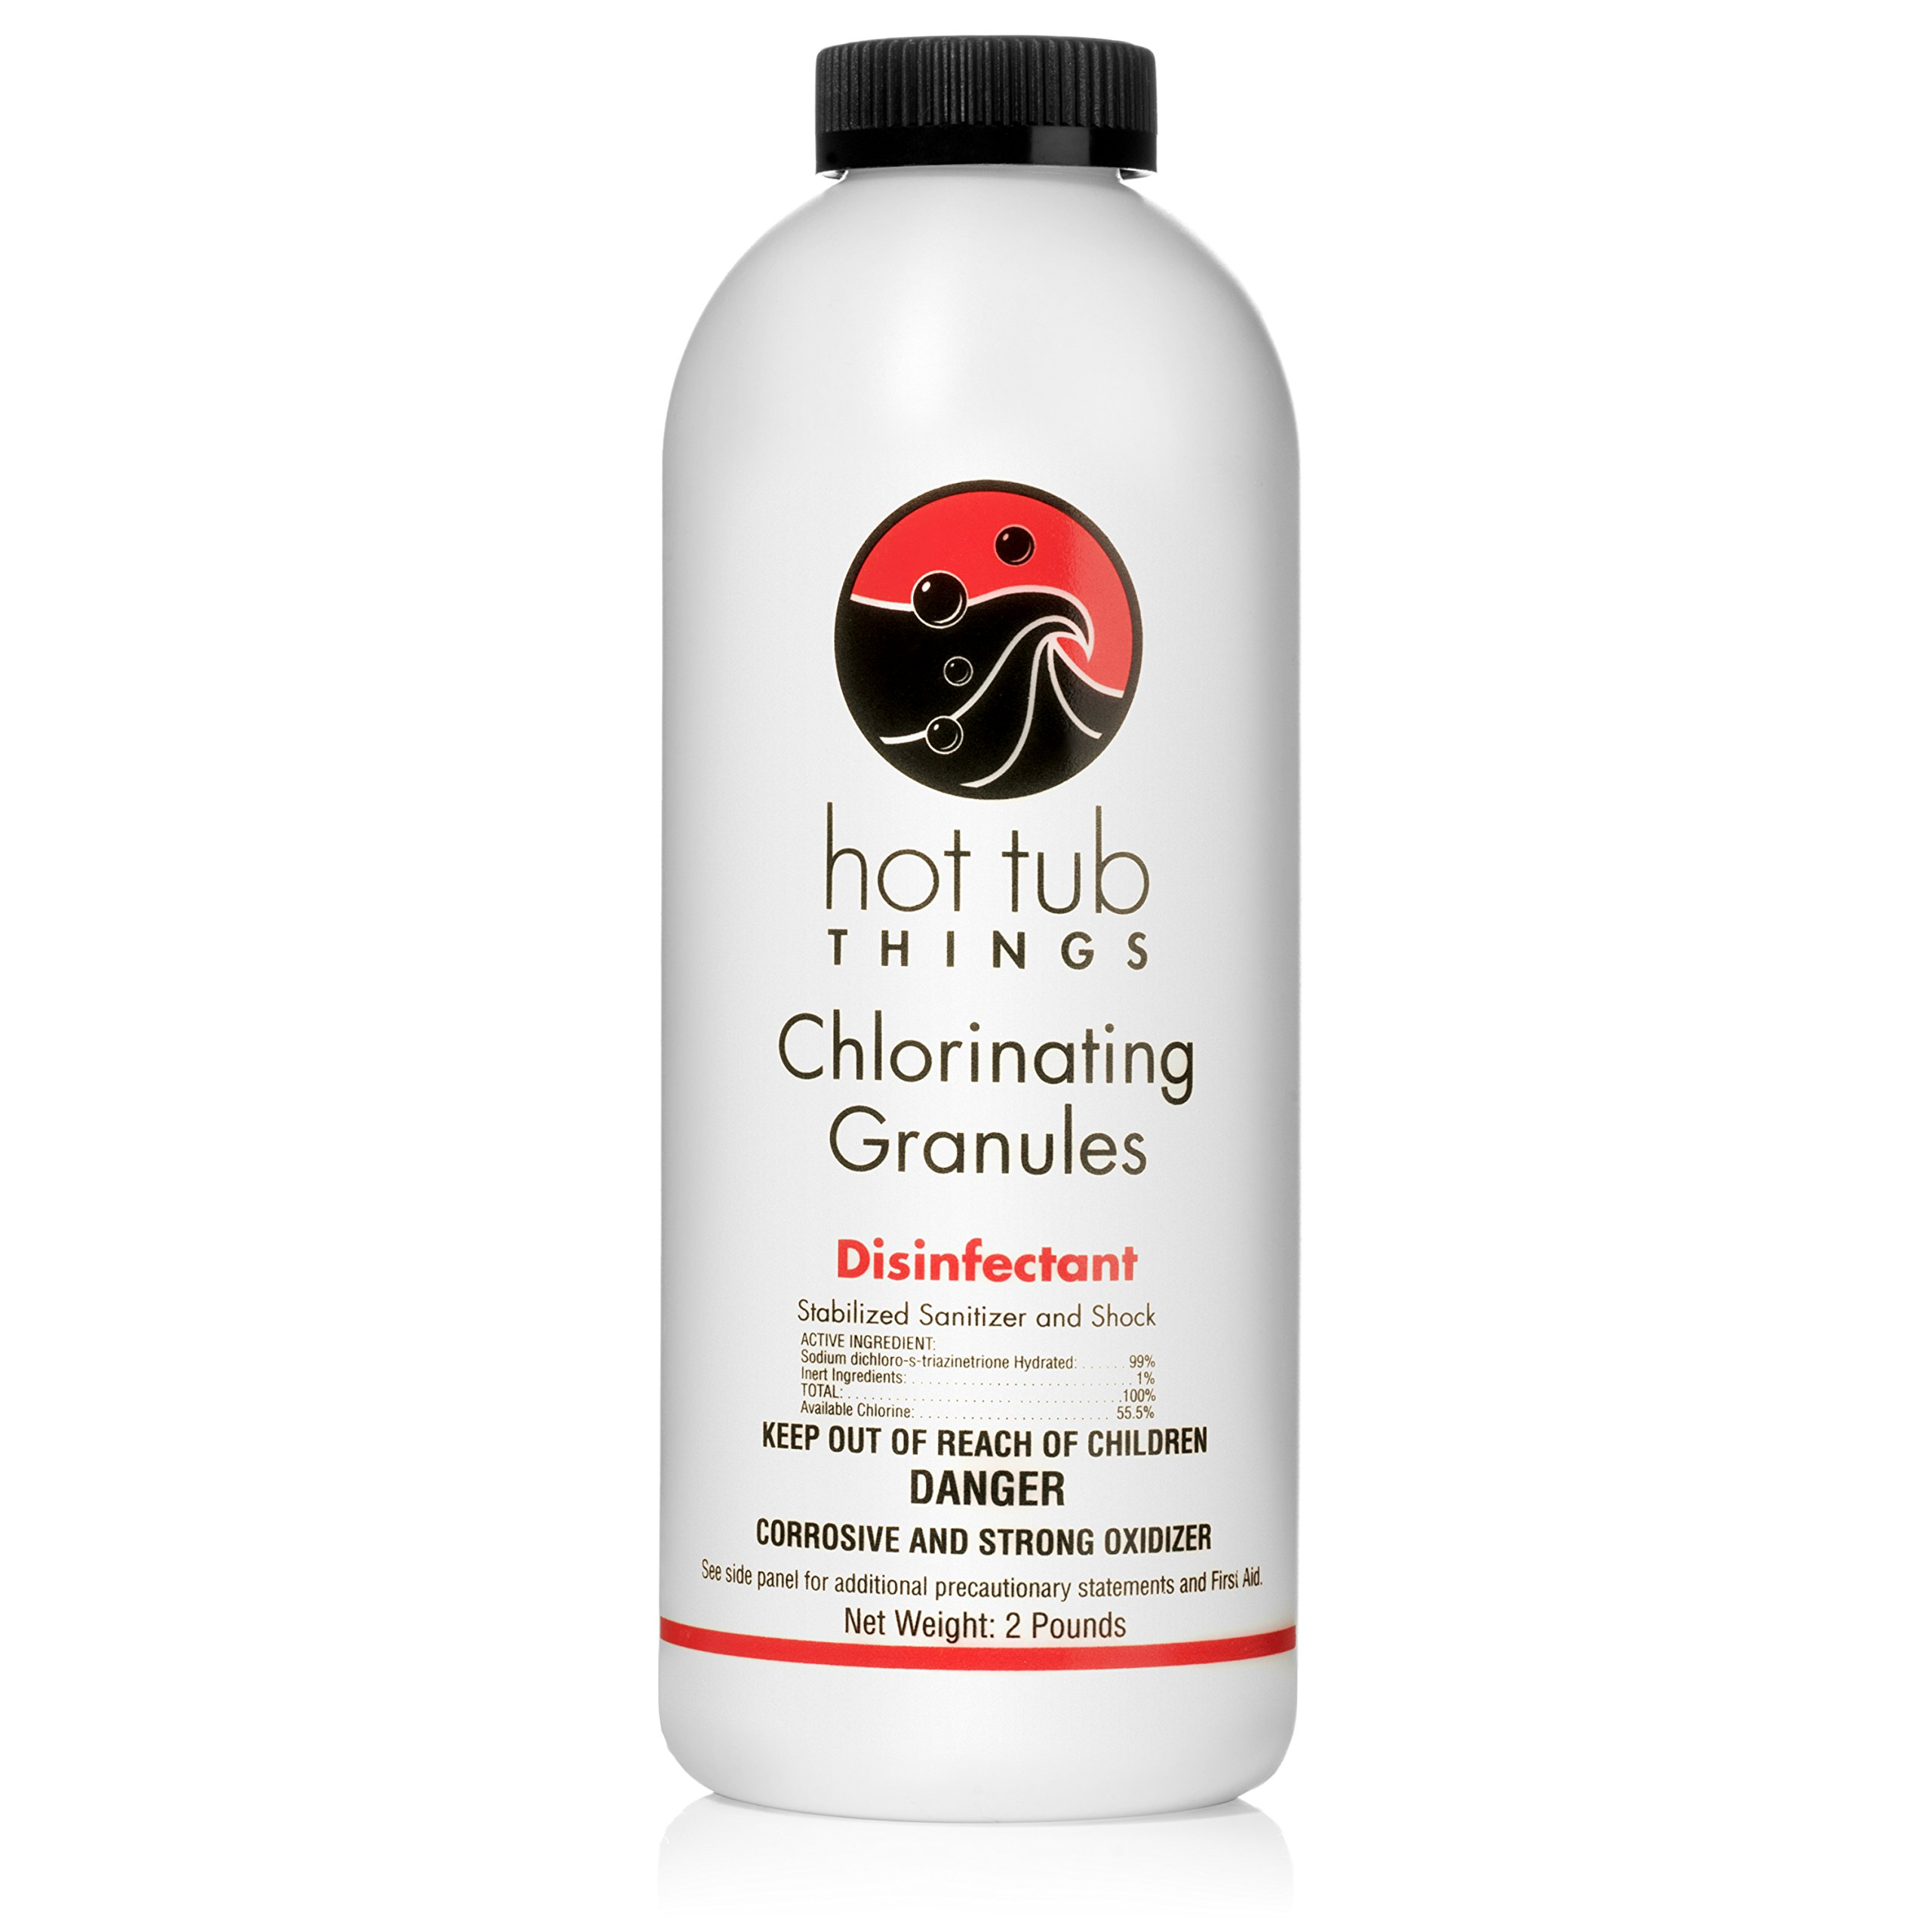 Hot Tub Things Chlorine Granules 2 Pounds - Effective Spa Water Disinfectant by Hot Tub Things